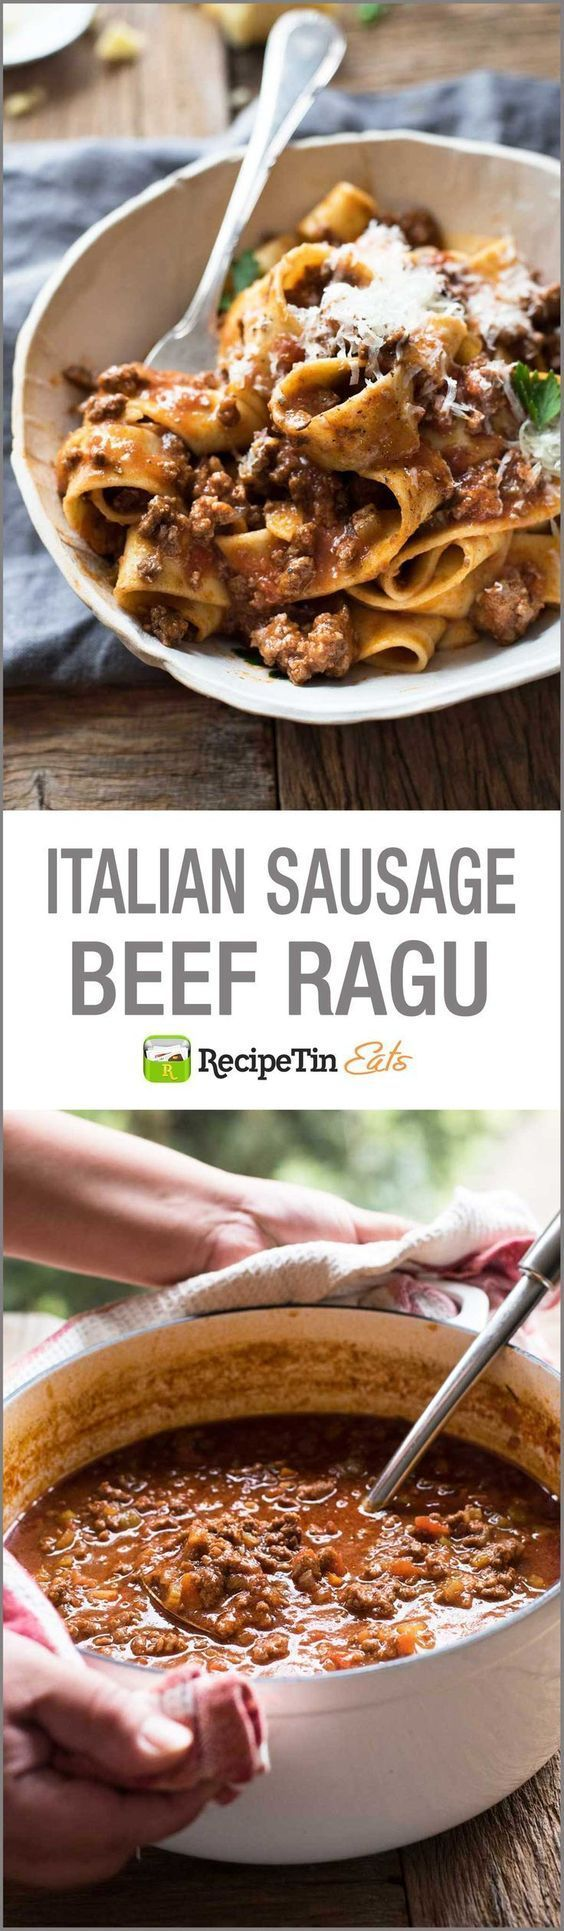 Modifi-able | Italian Sausage & Beef Ragu - make this in your SLOW COOKER!!! (Chicken Cacciatore Mario)